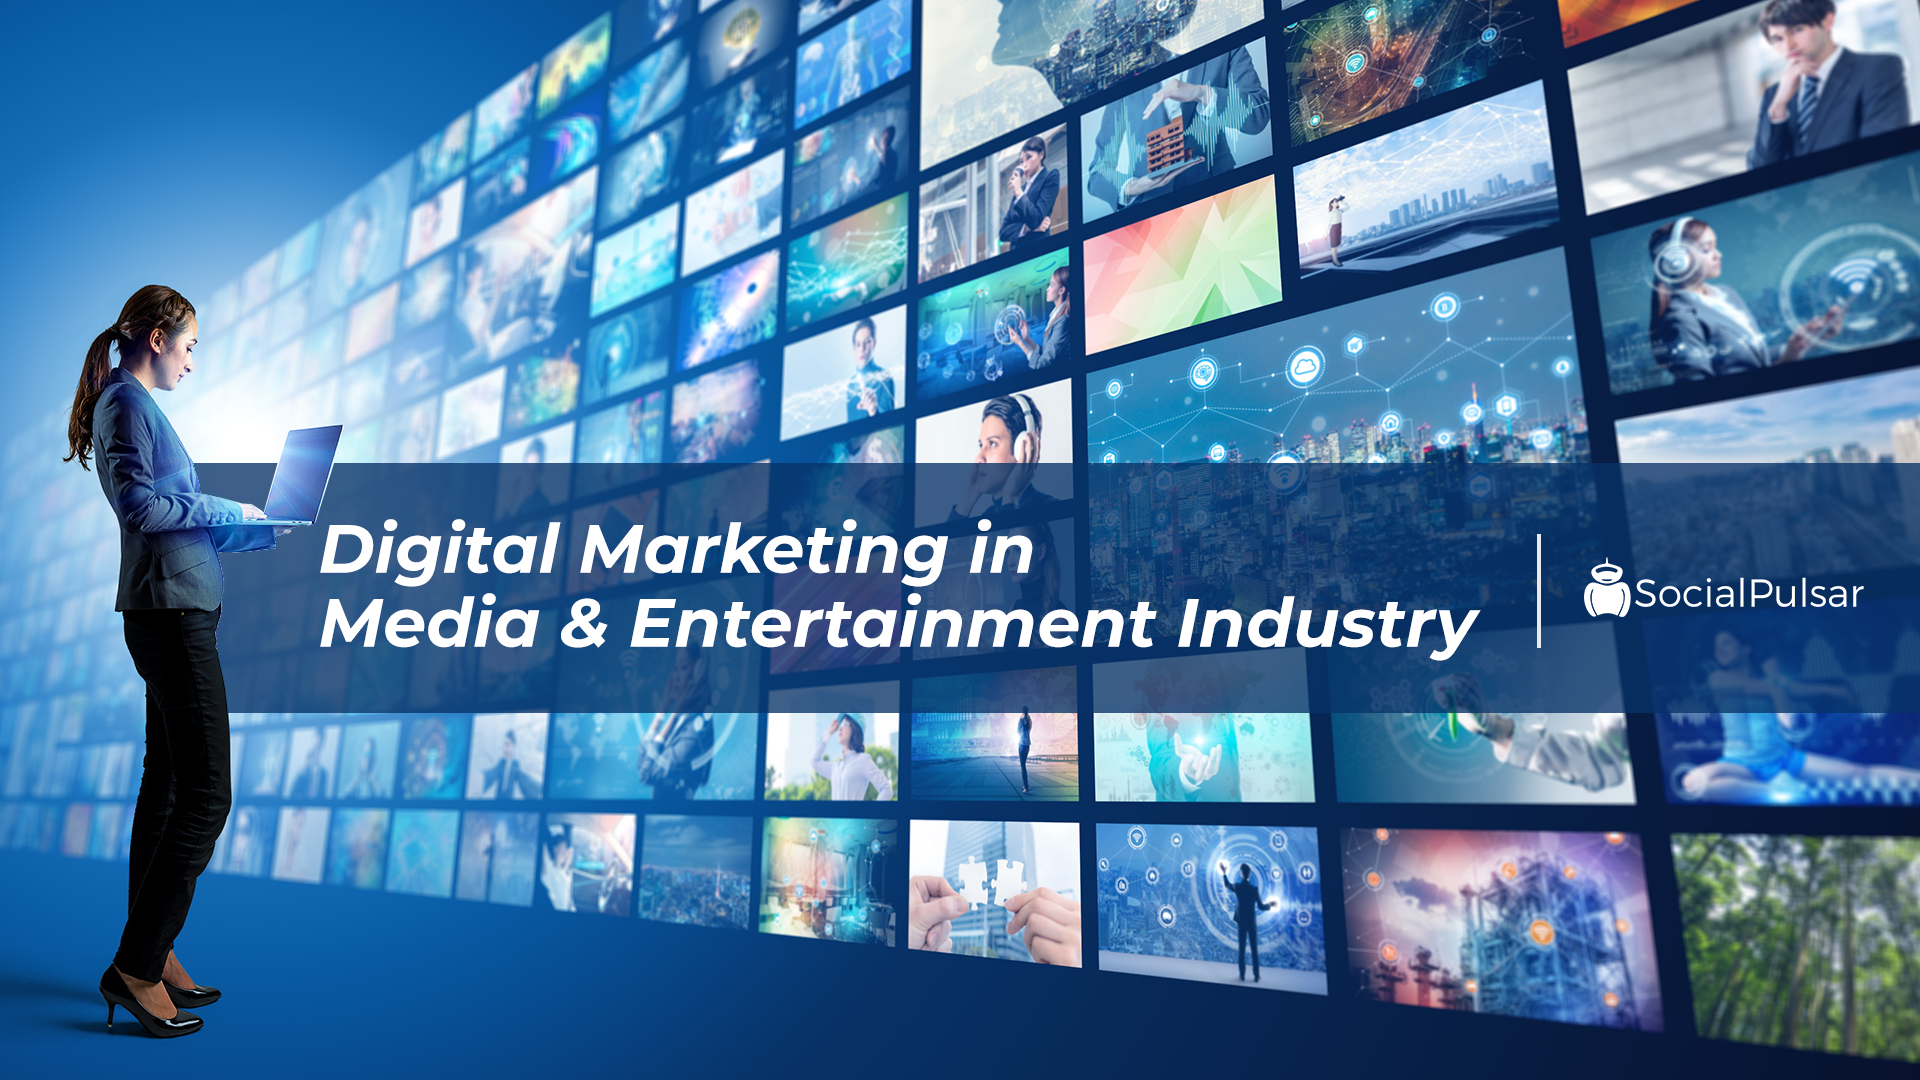 Digital Marketing for Media & Entertainment Industry